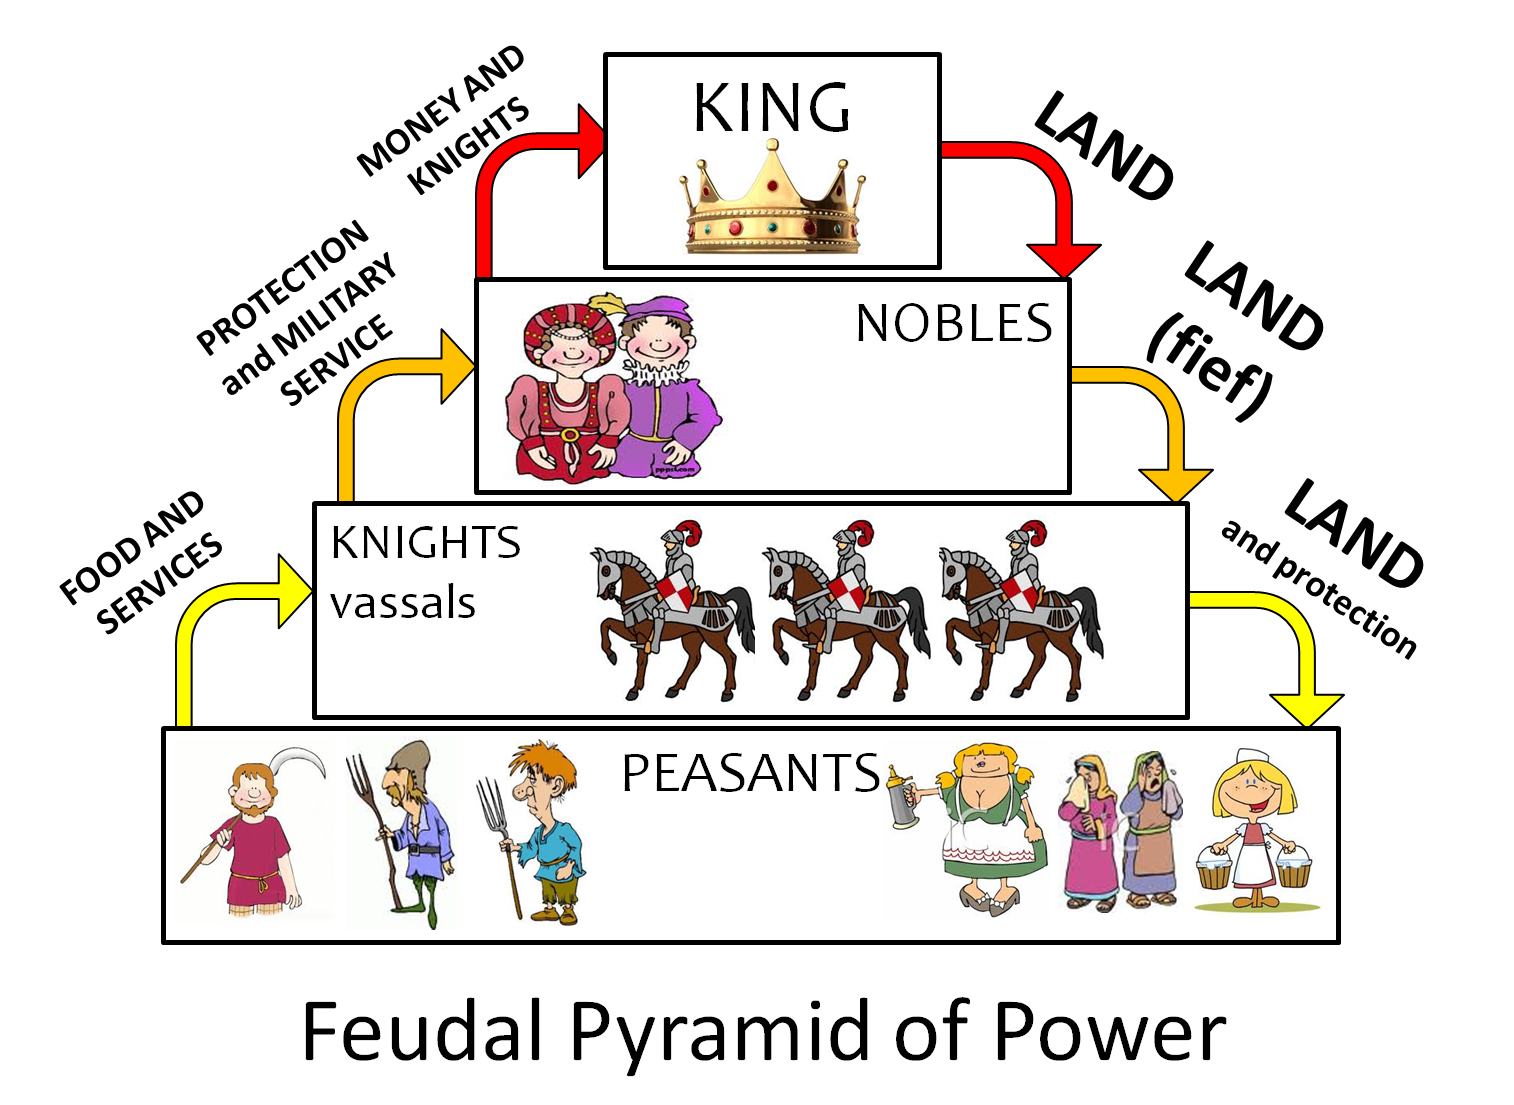 feudal system essays Feudalism in today's society essay by frog9091, university in the feudal system, this protection was in the form of armies provided by the vassals to the lord.